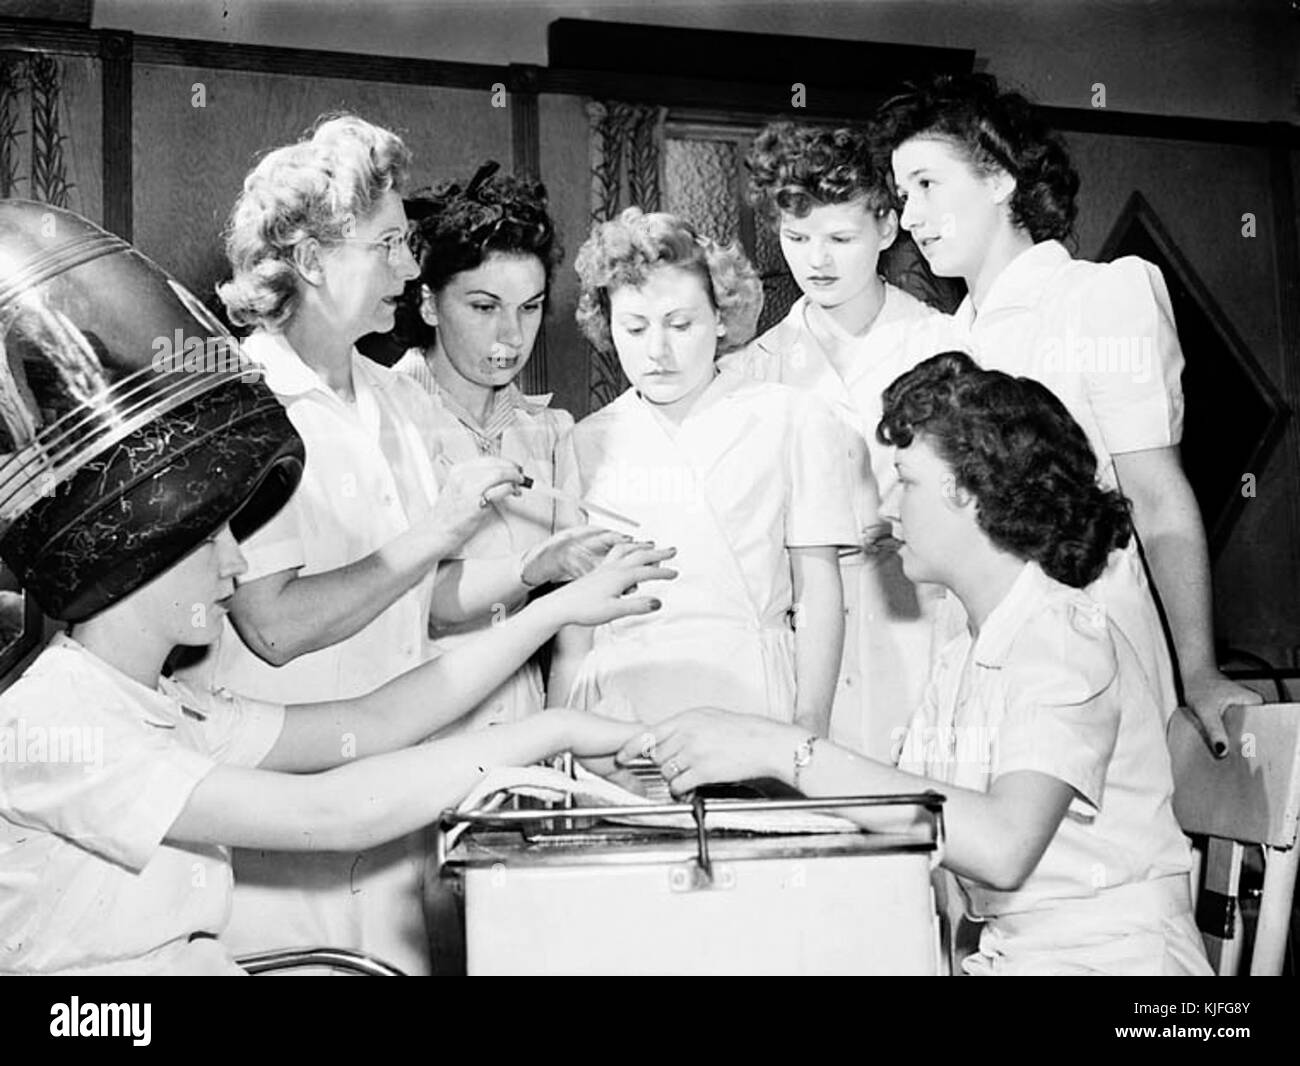 Ex servicewomen learning manicure techniques - Stock Image